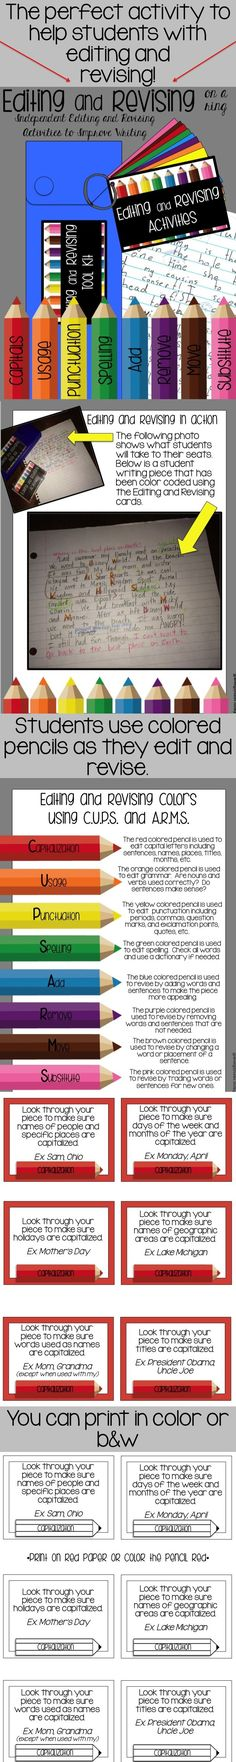 Great way for students to learn to edit and revise their writing!!